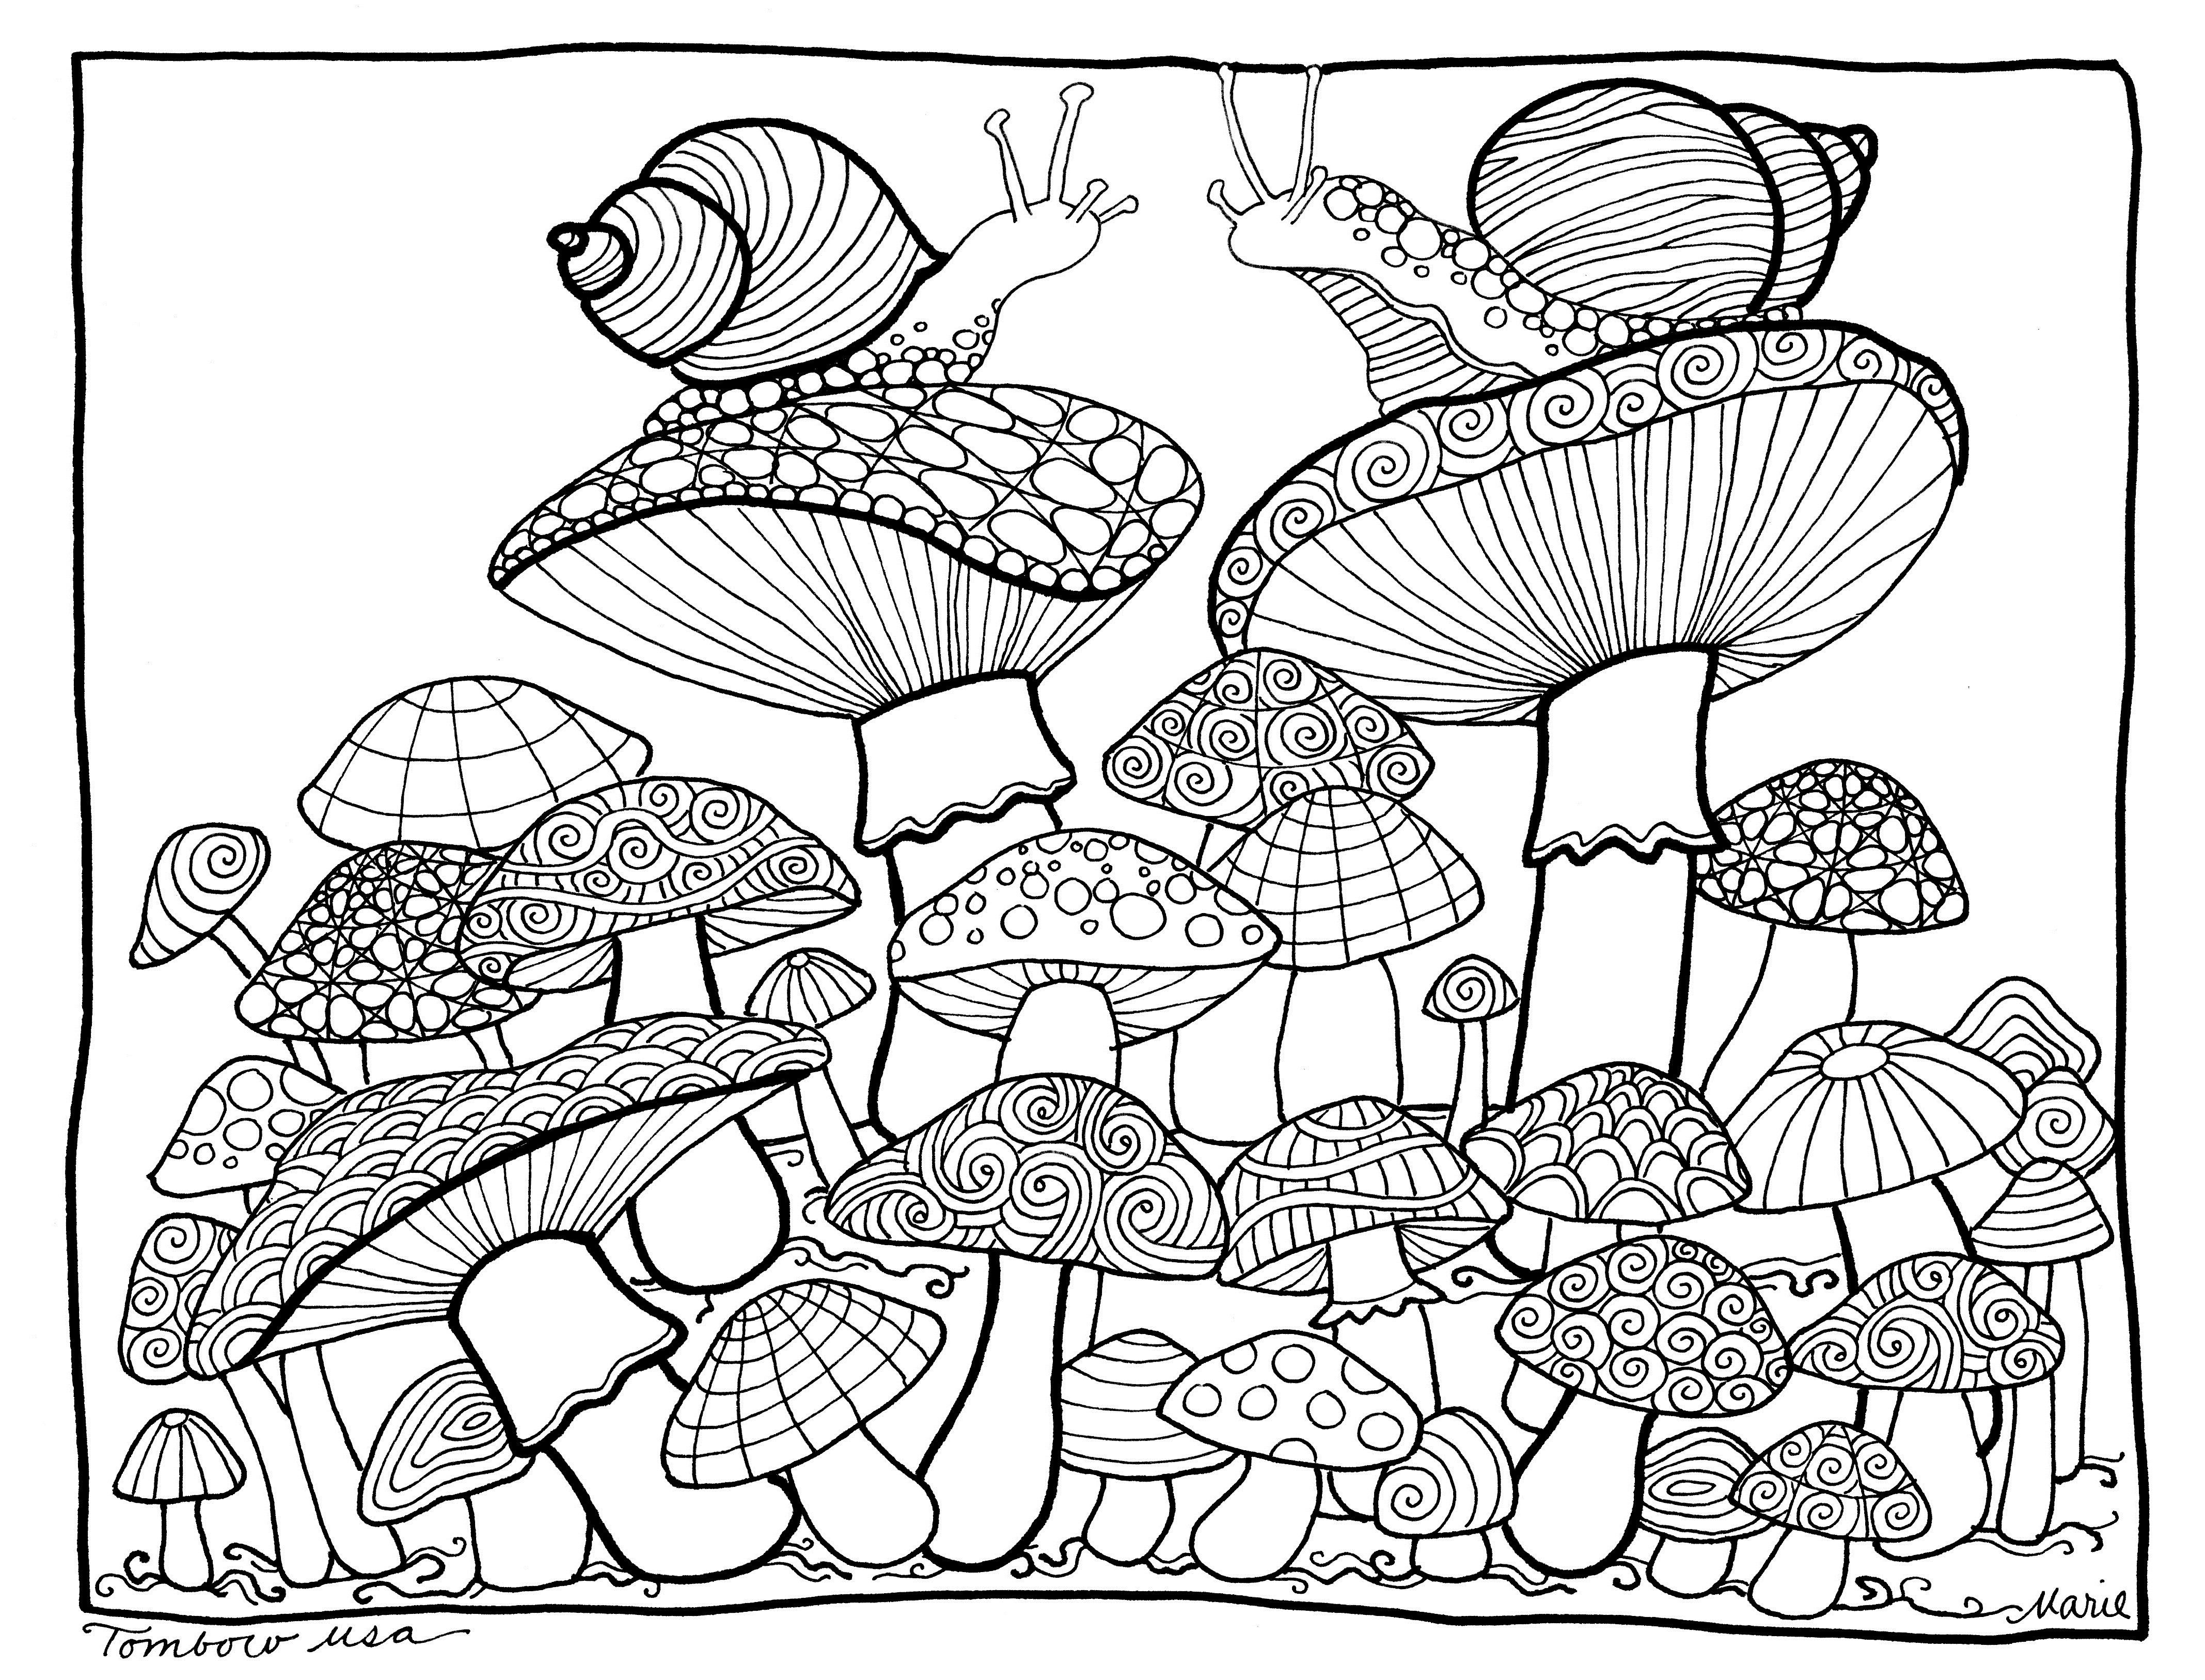 Mushrooms Coloring Pagetombow Usa | Paper | Color, Coloring - Free Printable Mushroom Coloring Pages